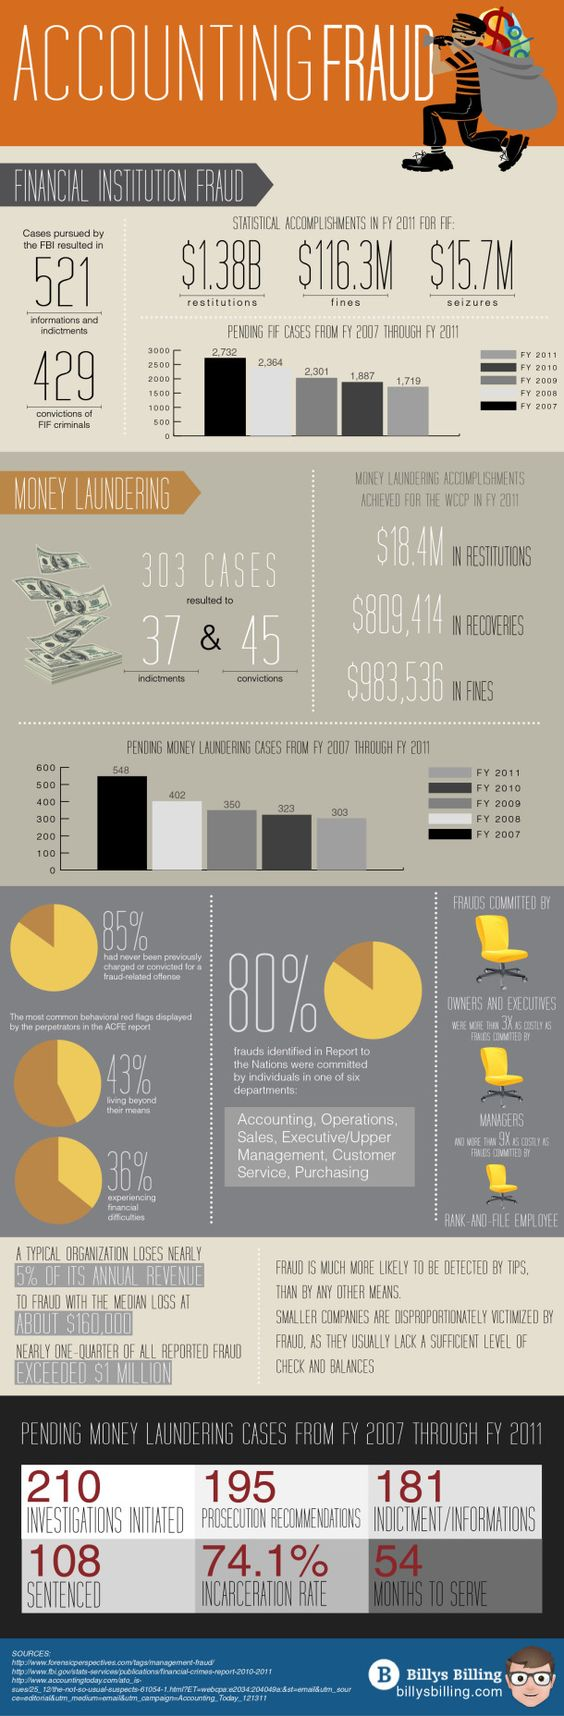 Accounting Fraud [INFOGRAPHIC] #accounting #fraud